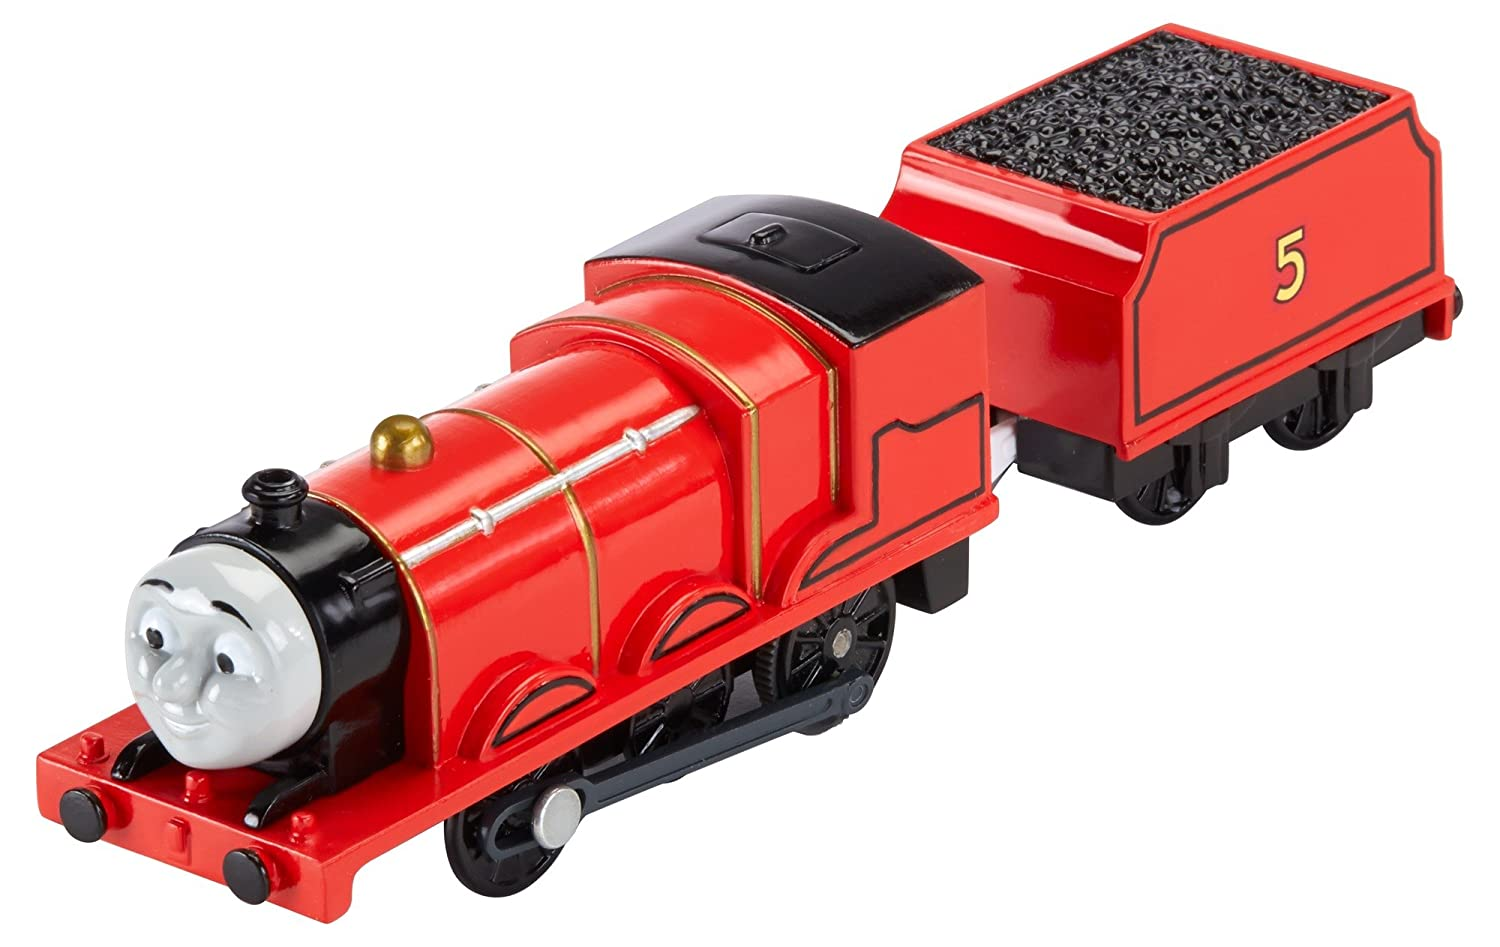 Thomas & Friends BML08 James, Thomas the Tank Engine Toy Engine, Trackmaster Toy Train, 3 Year Old Mattel